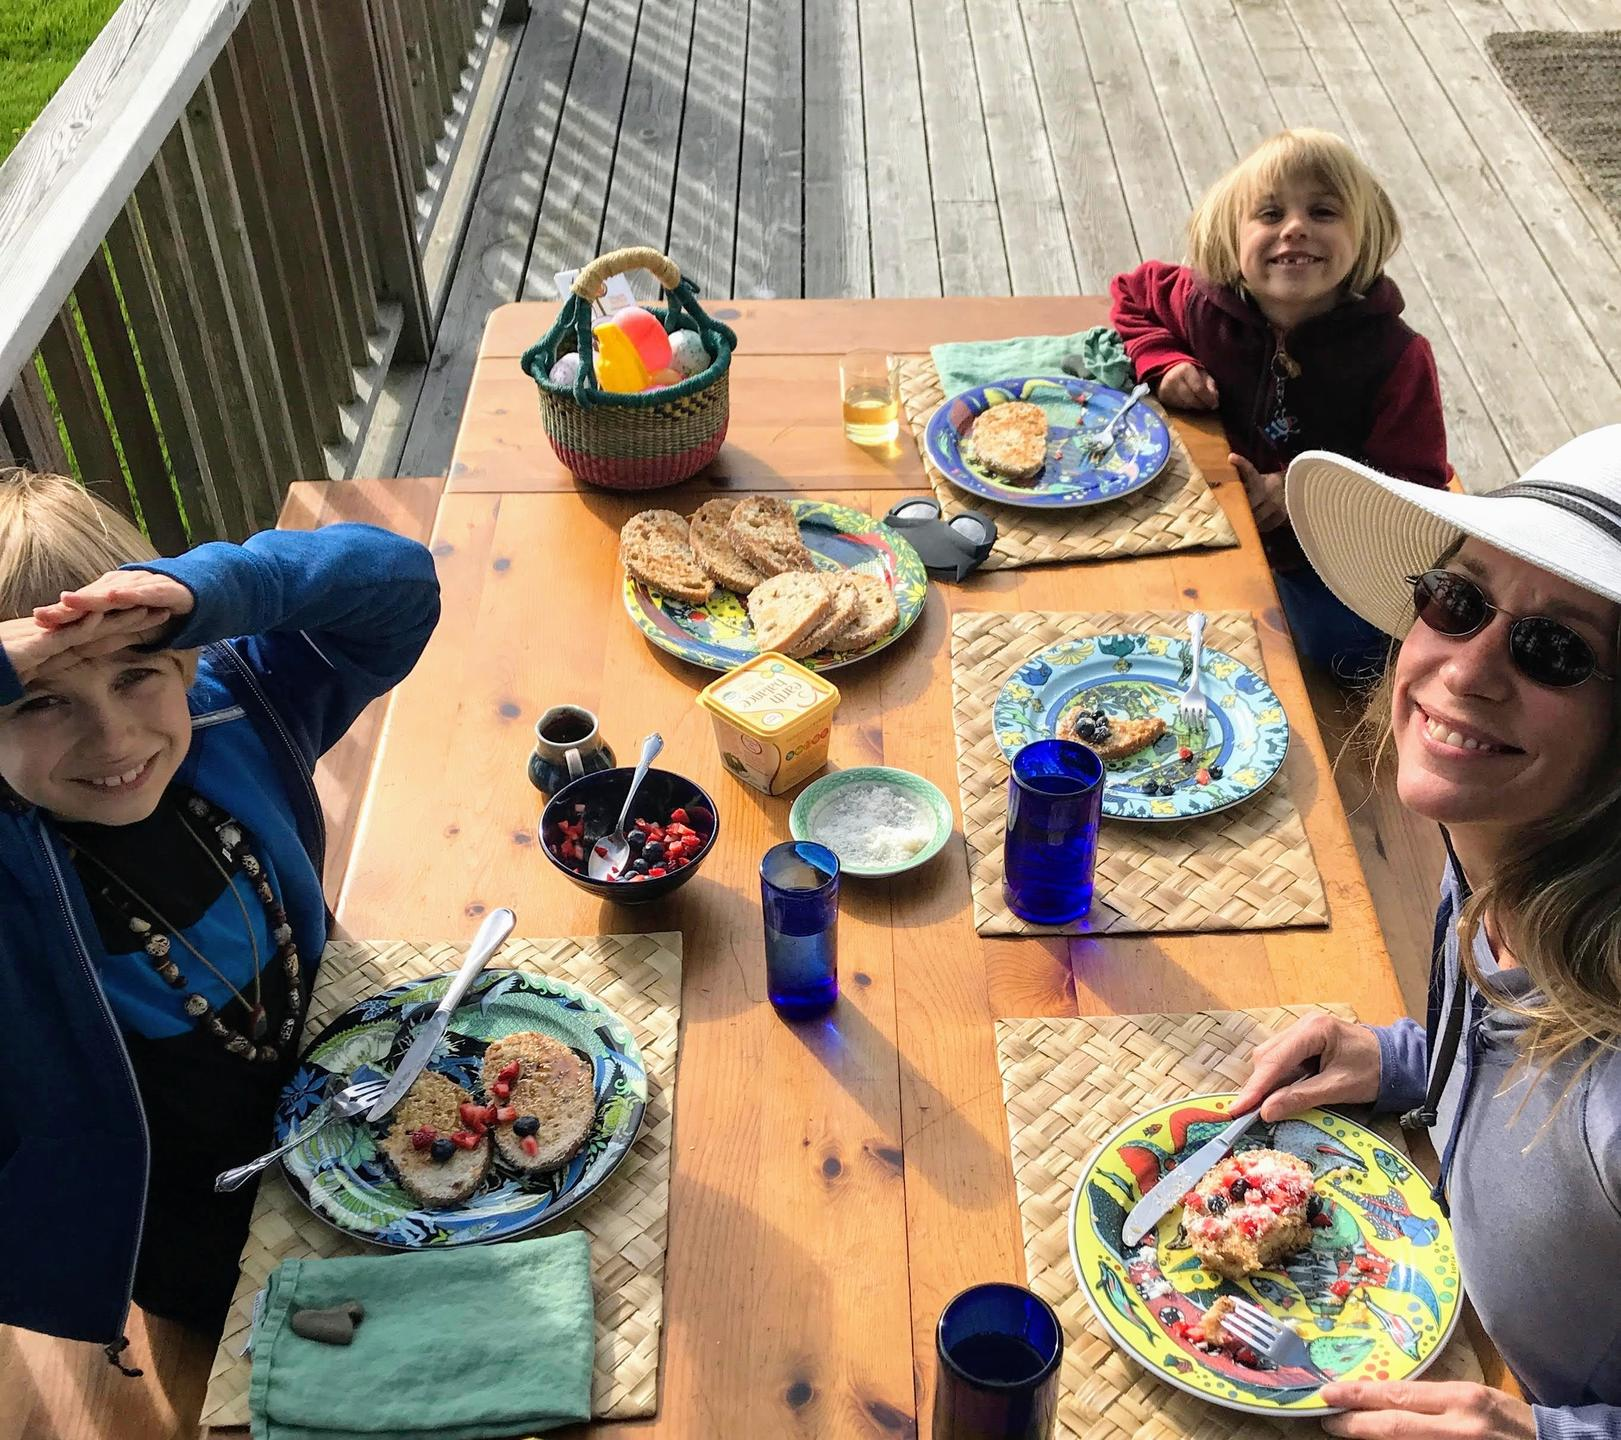 vegan family meal of vegan french toast outside on the deck